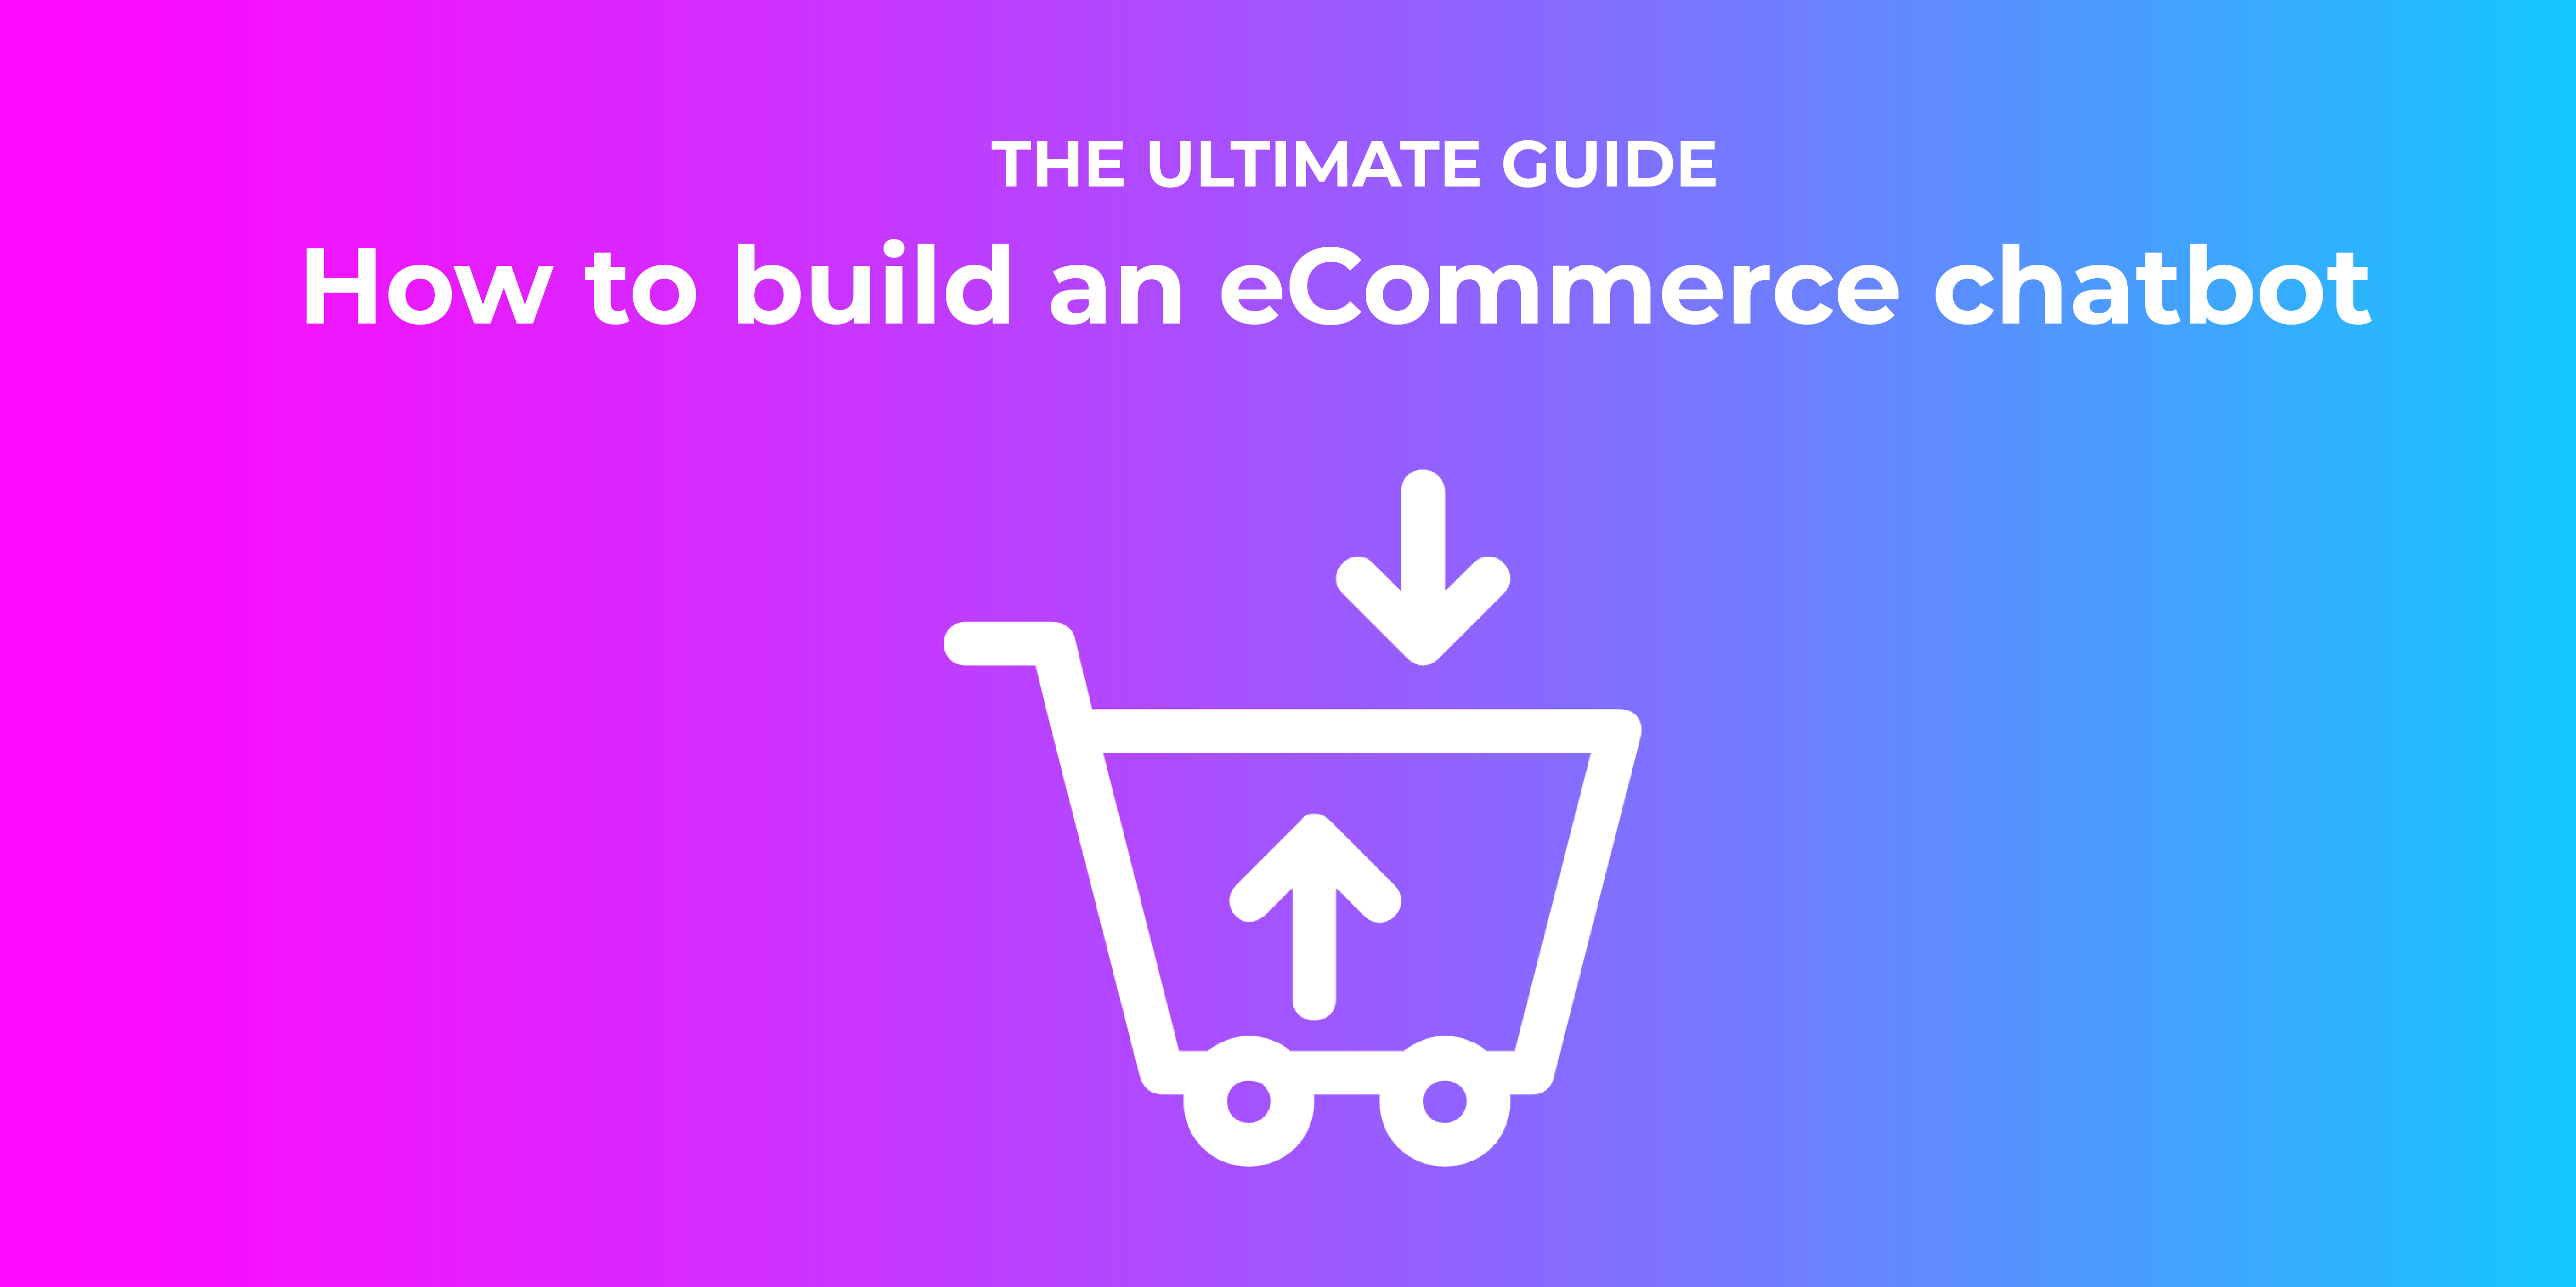 How to build an eCommerce chatbot: The Ultimate Guide (2020)